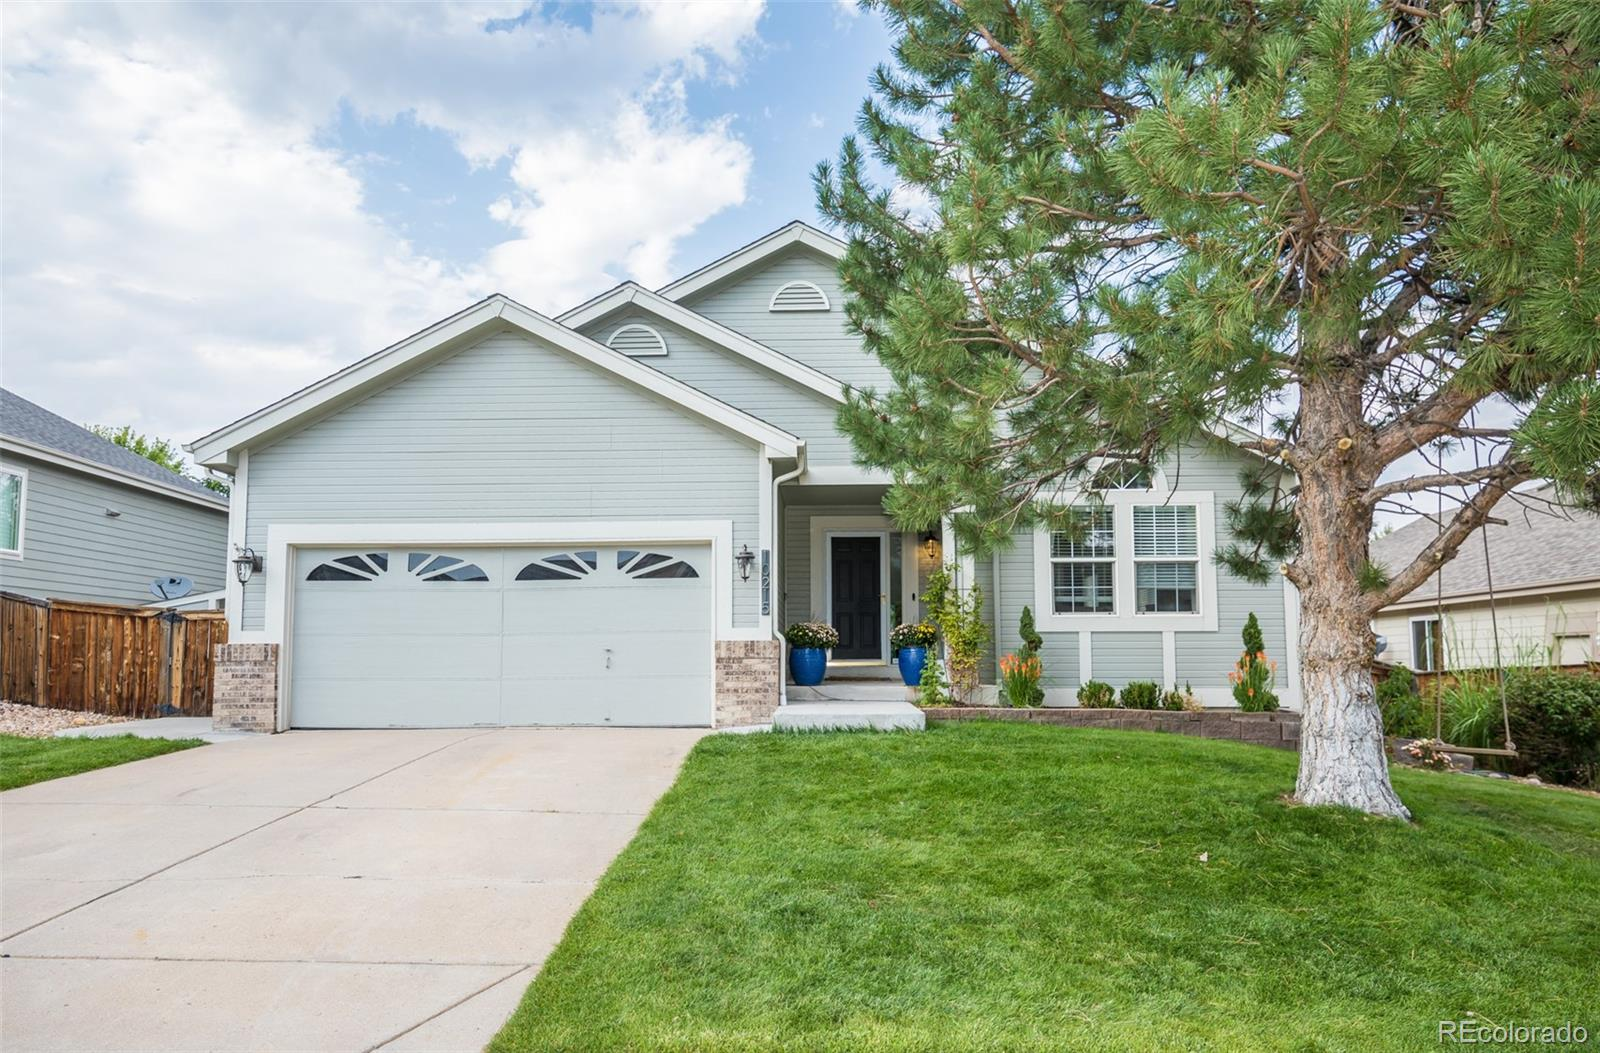 10215 Dunsford Drive, Lone Tree, CO 80124